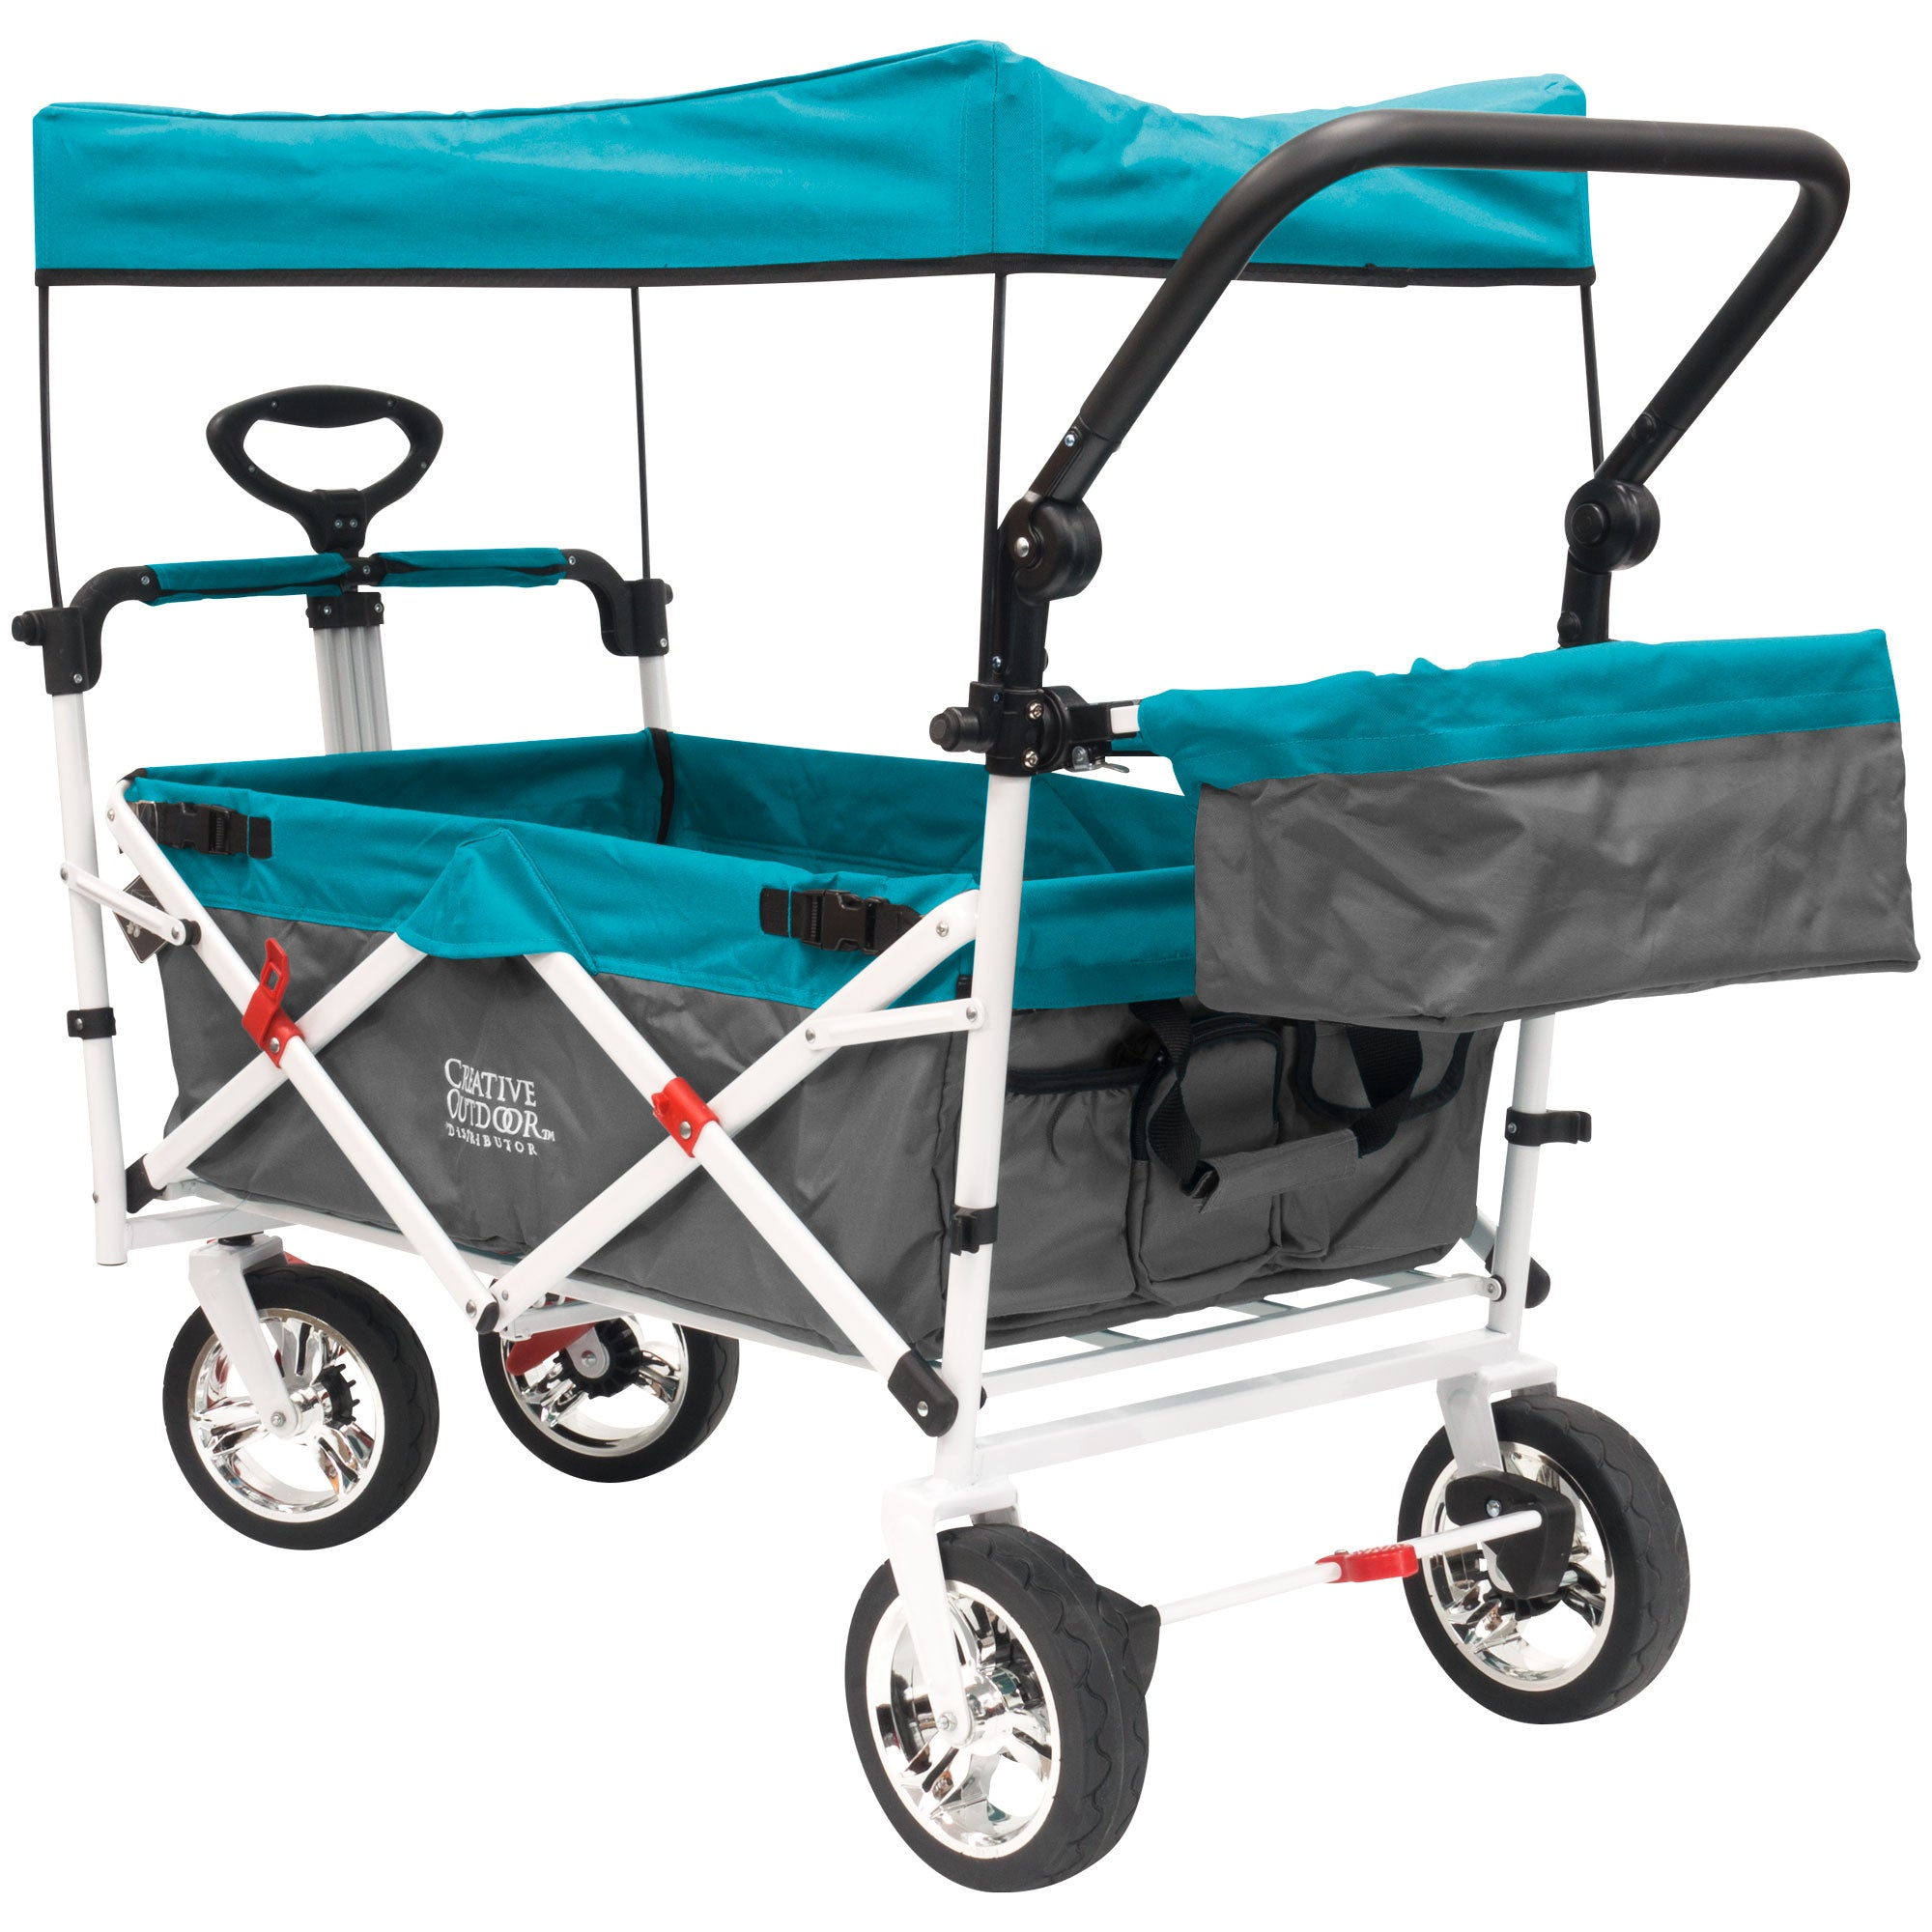 Push Pull SILVER SERIES PLUS Folding Wagon Stroller with Canopy | Teal